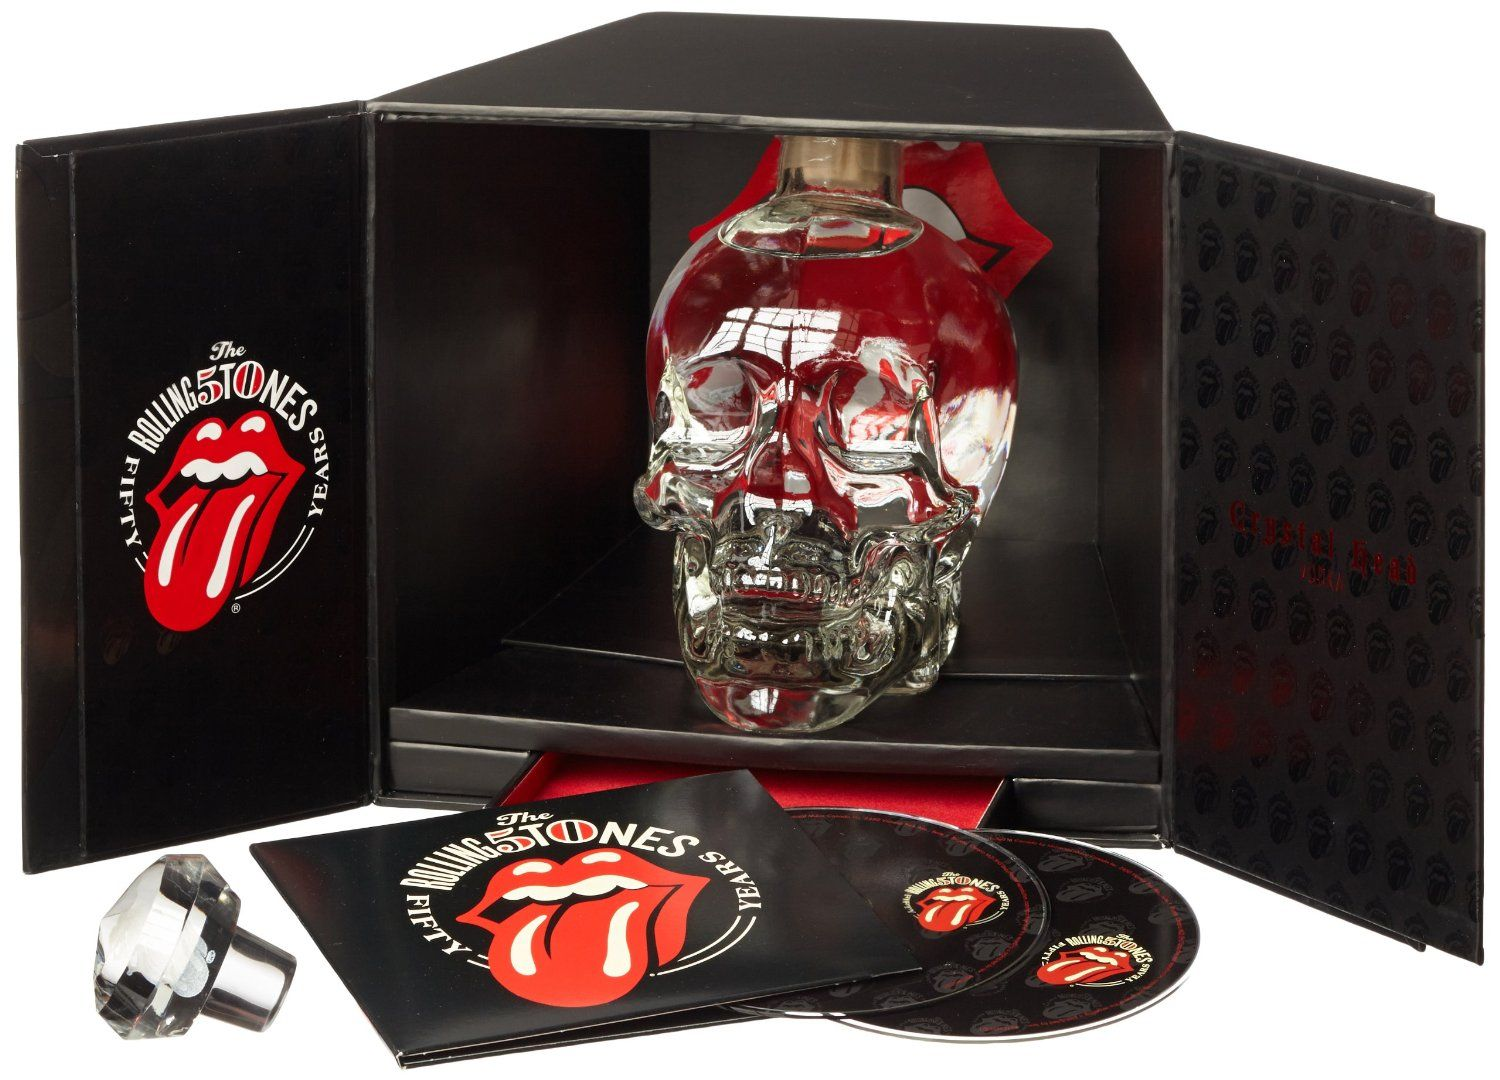 Crystal Head Wodka Rolling Stones 50th Anniversary Limitierte ...